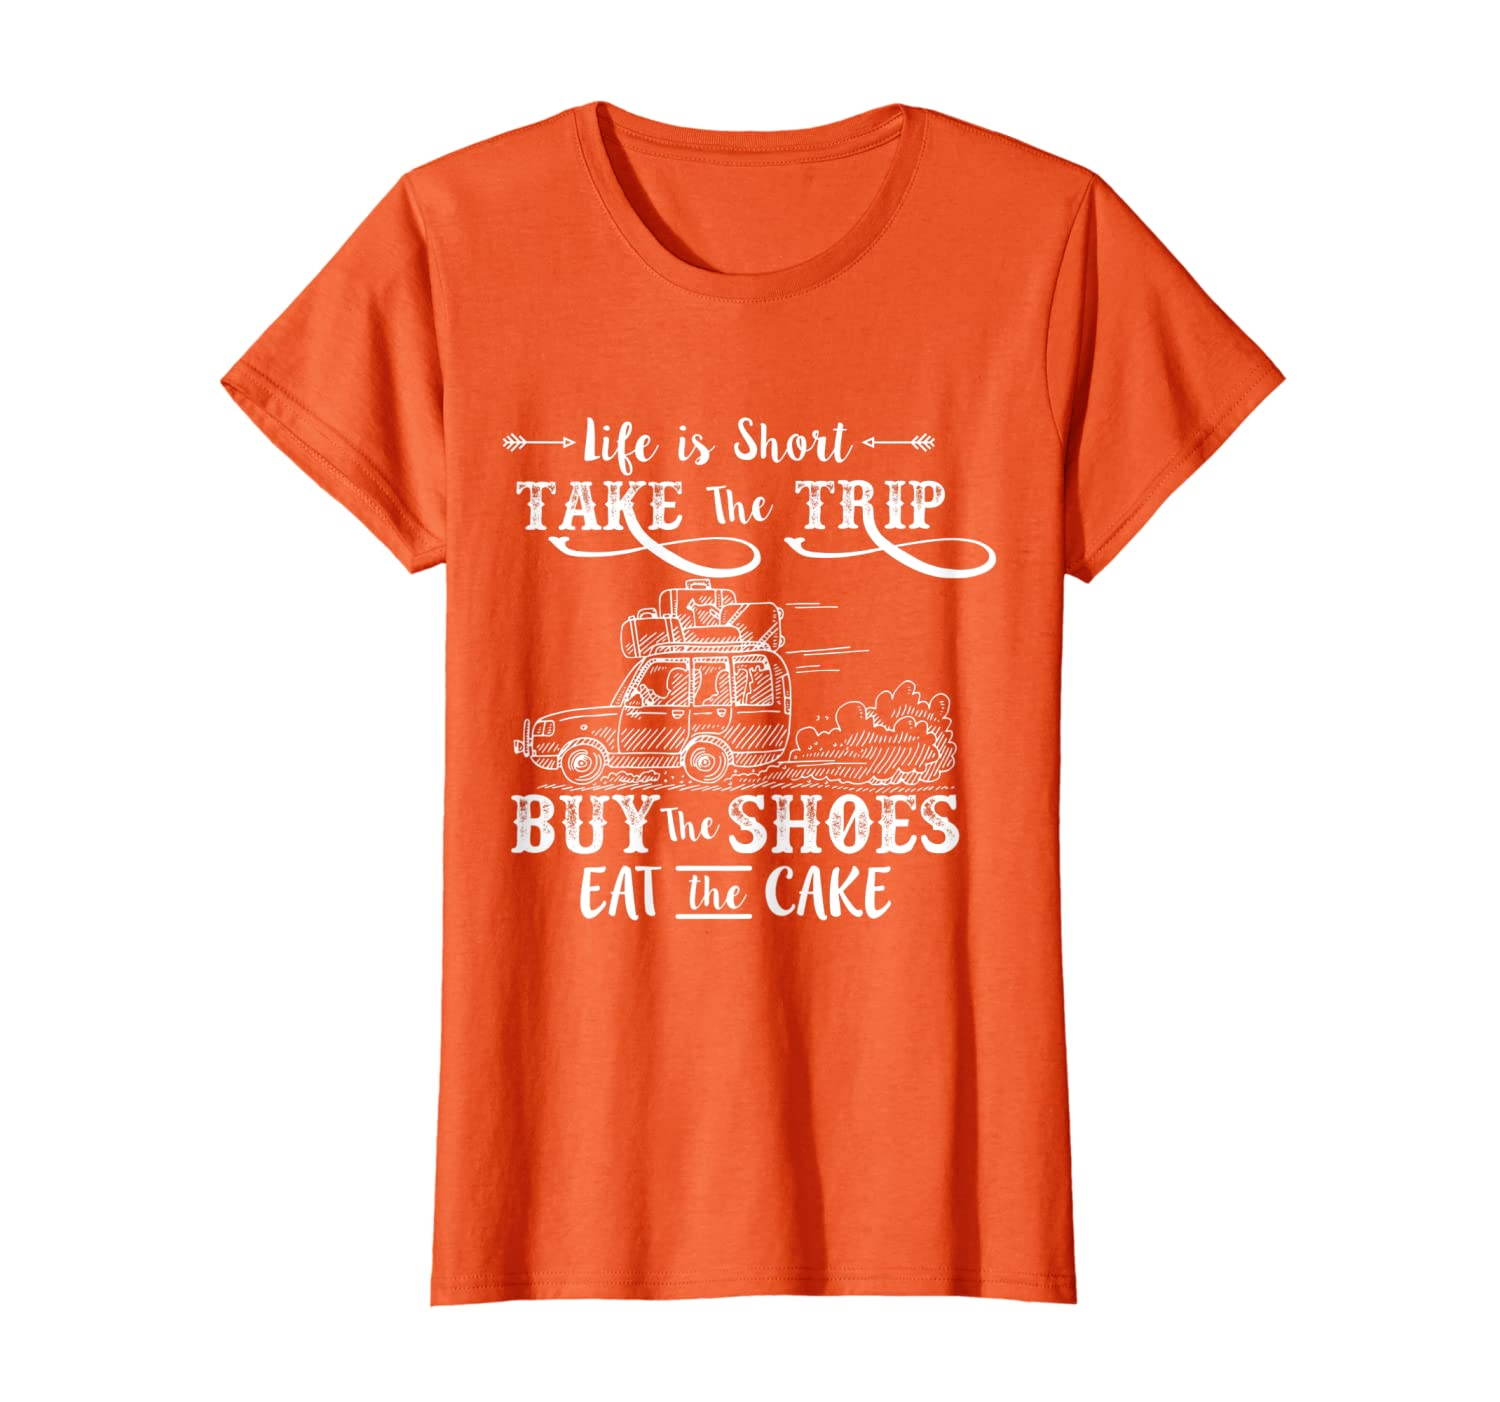 29005be8d6b94 Life Is Short Take The Trip Buy The Shoes Eat The Cake Shirt